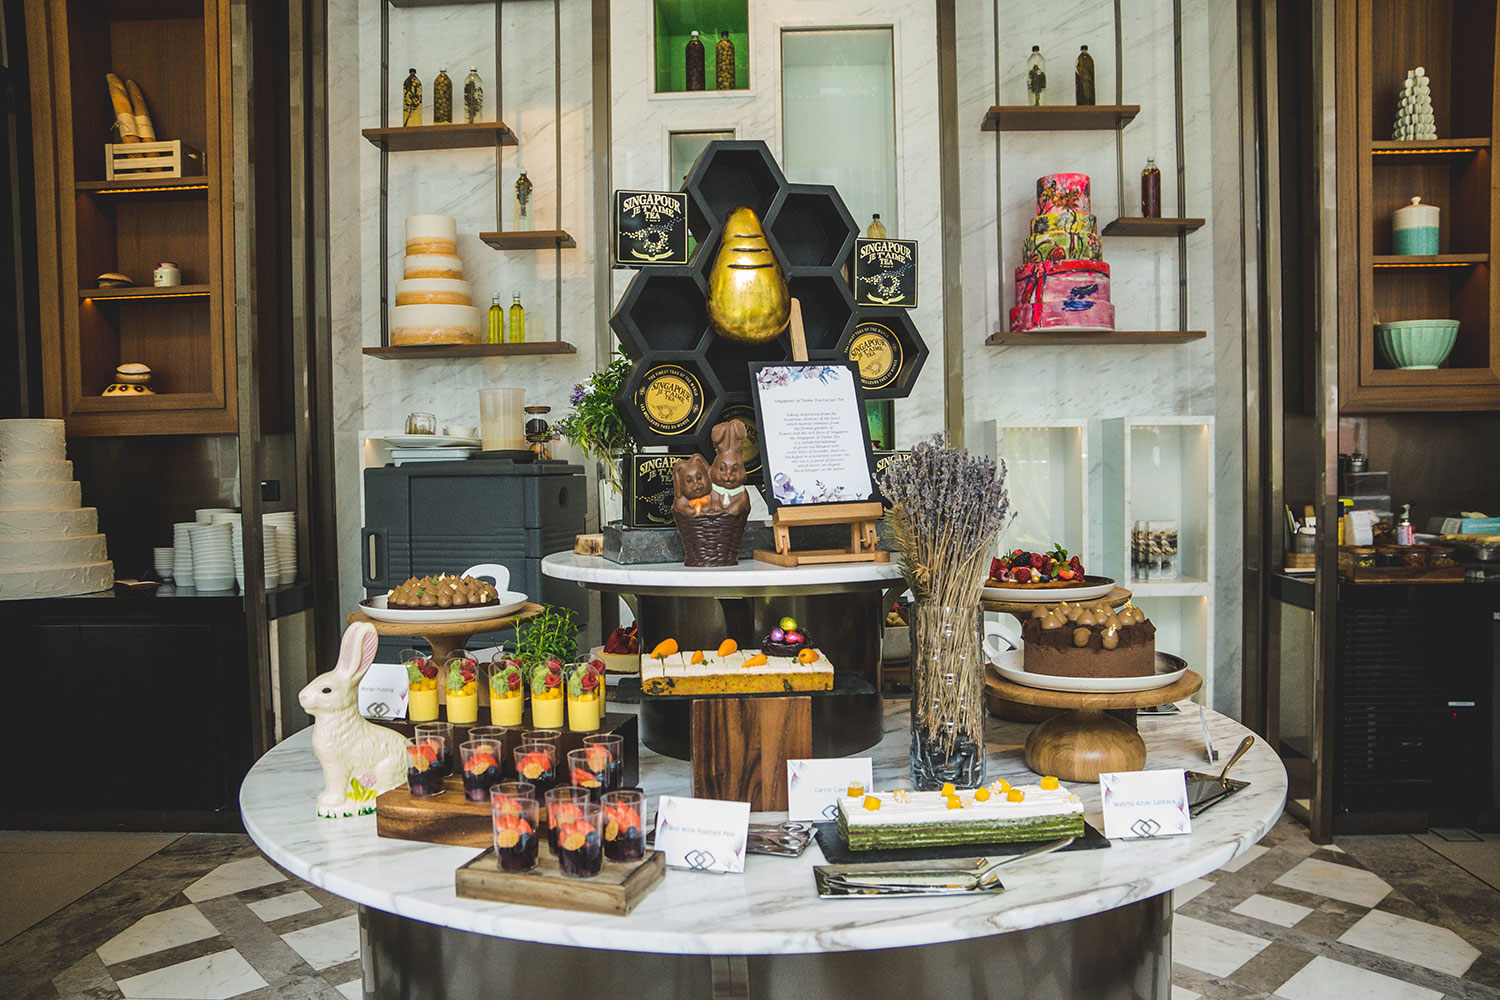 A Magnifique Easter Celebration with Easter Sunday Family Brunch at Racines